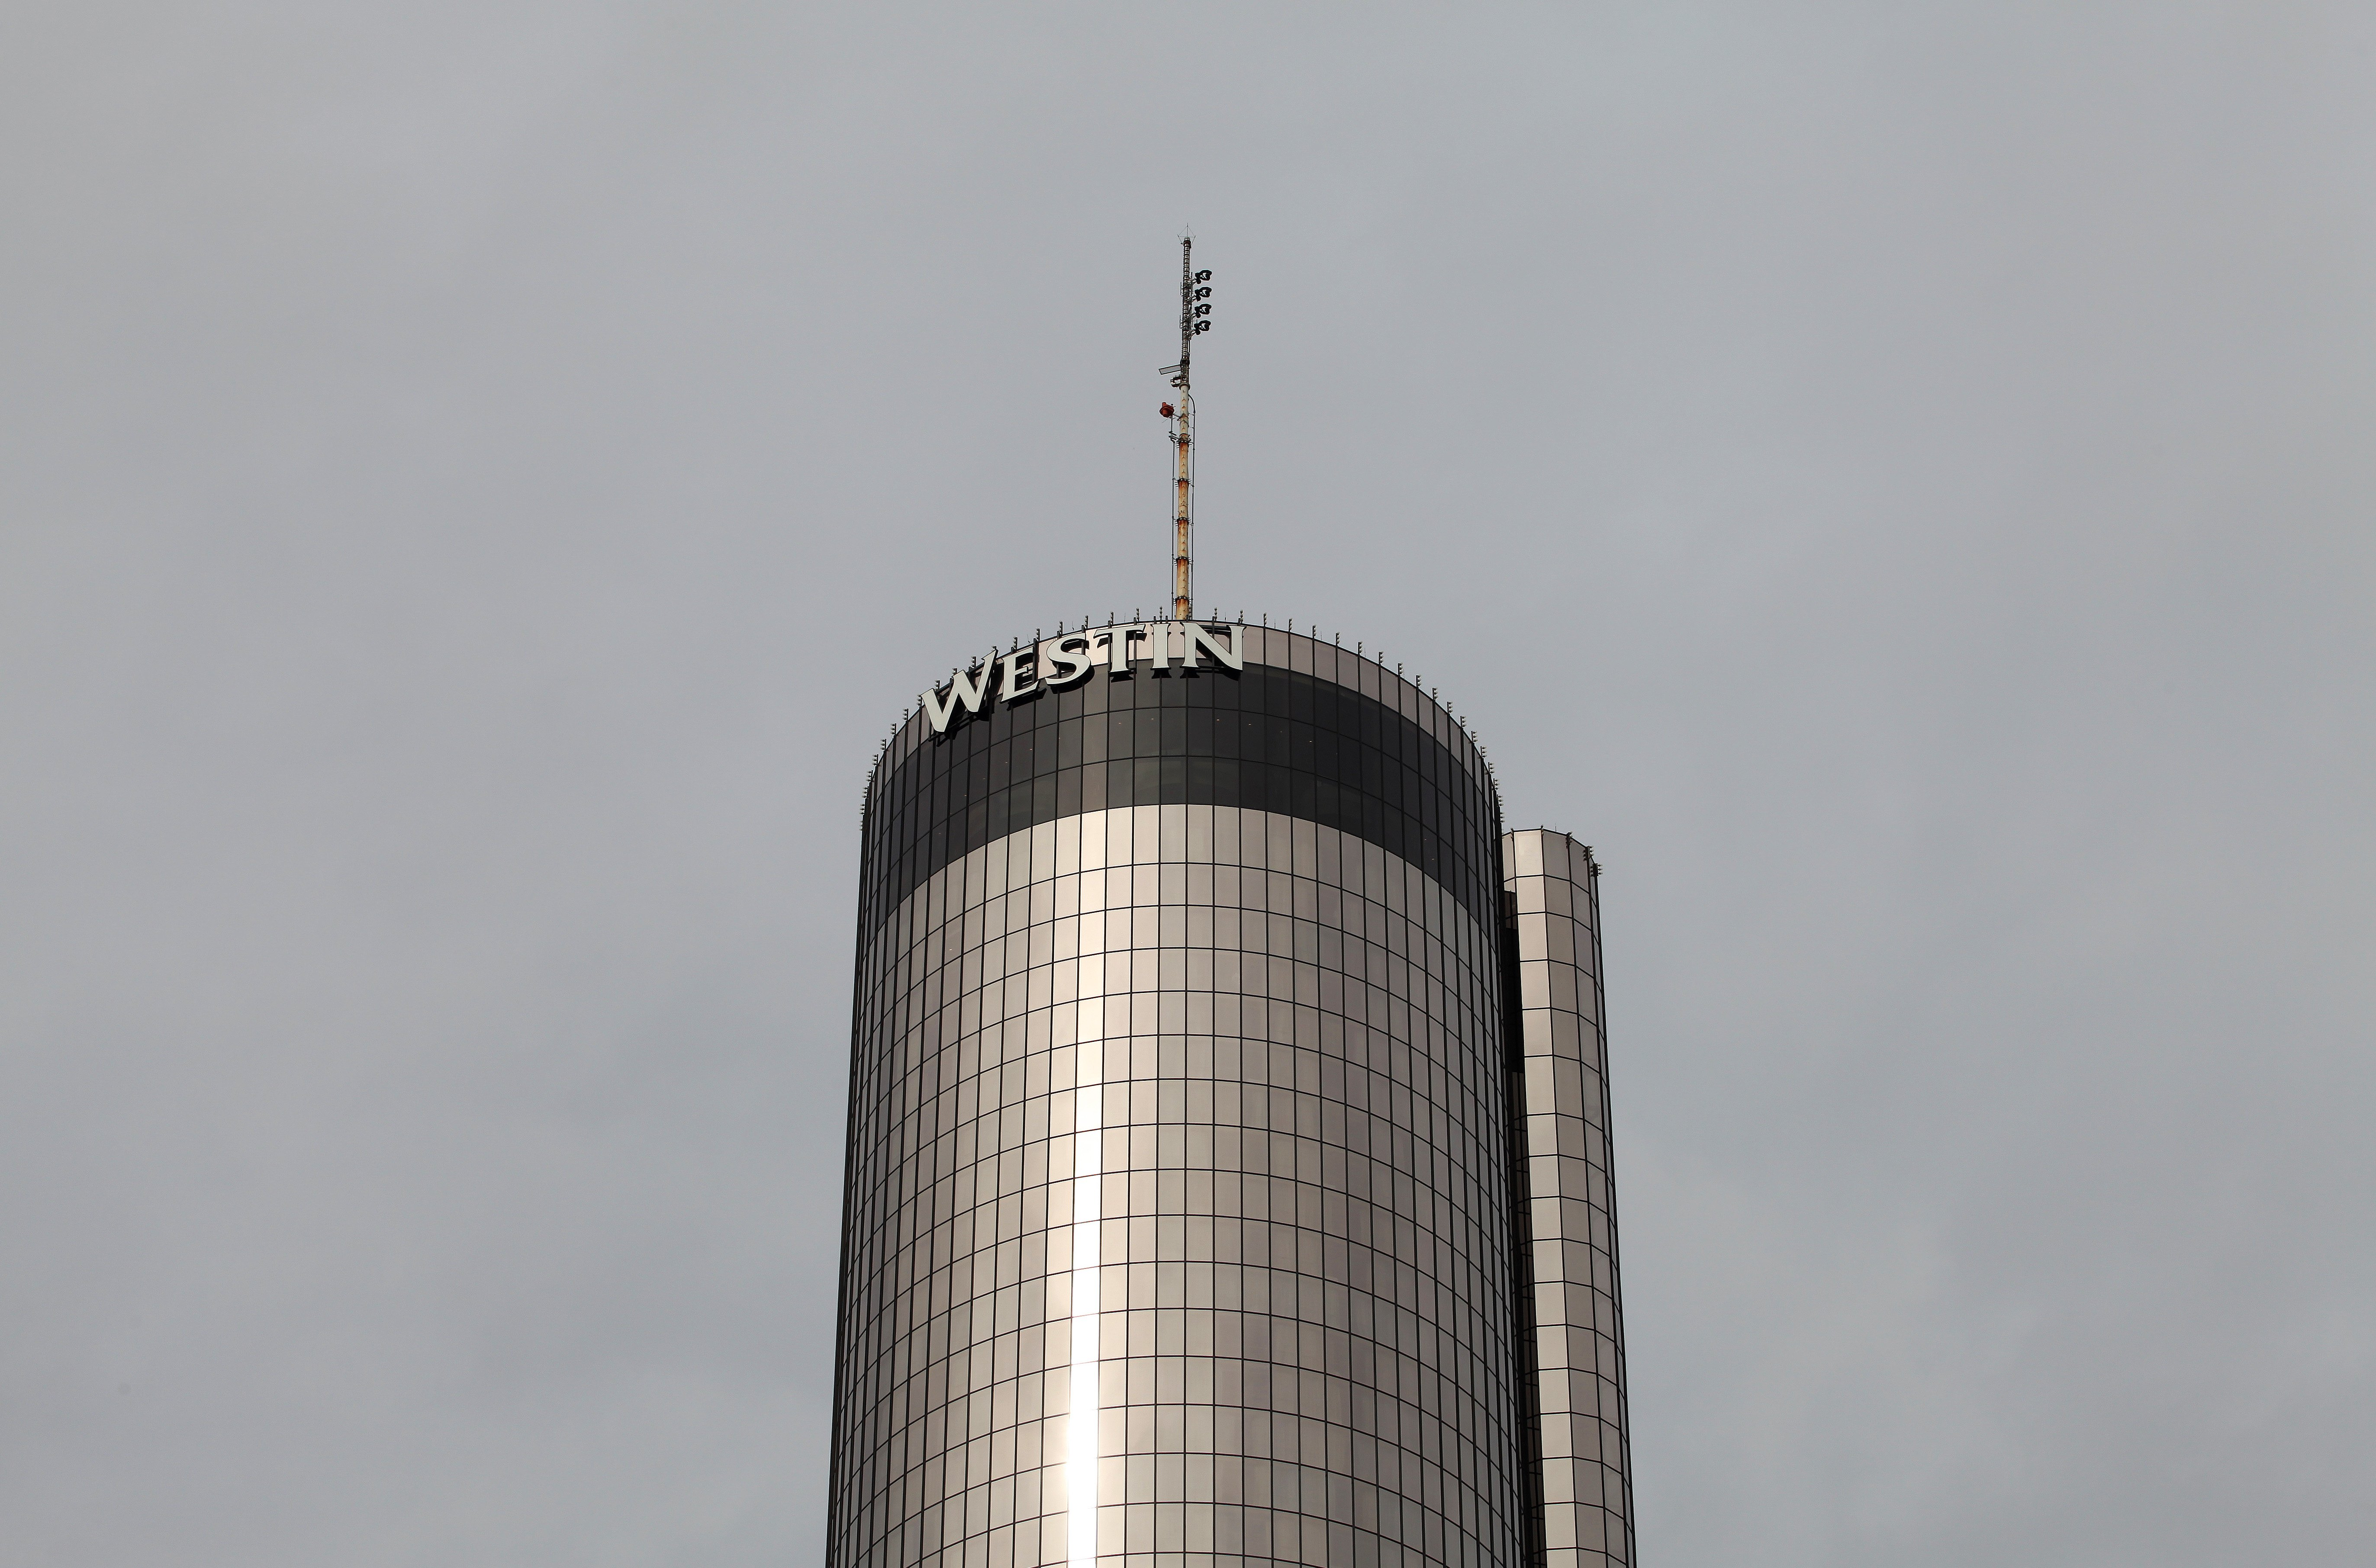 The woman died at the Westin Peachtree Plaza Hotel, in Atlanta, Georgia.